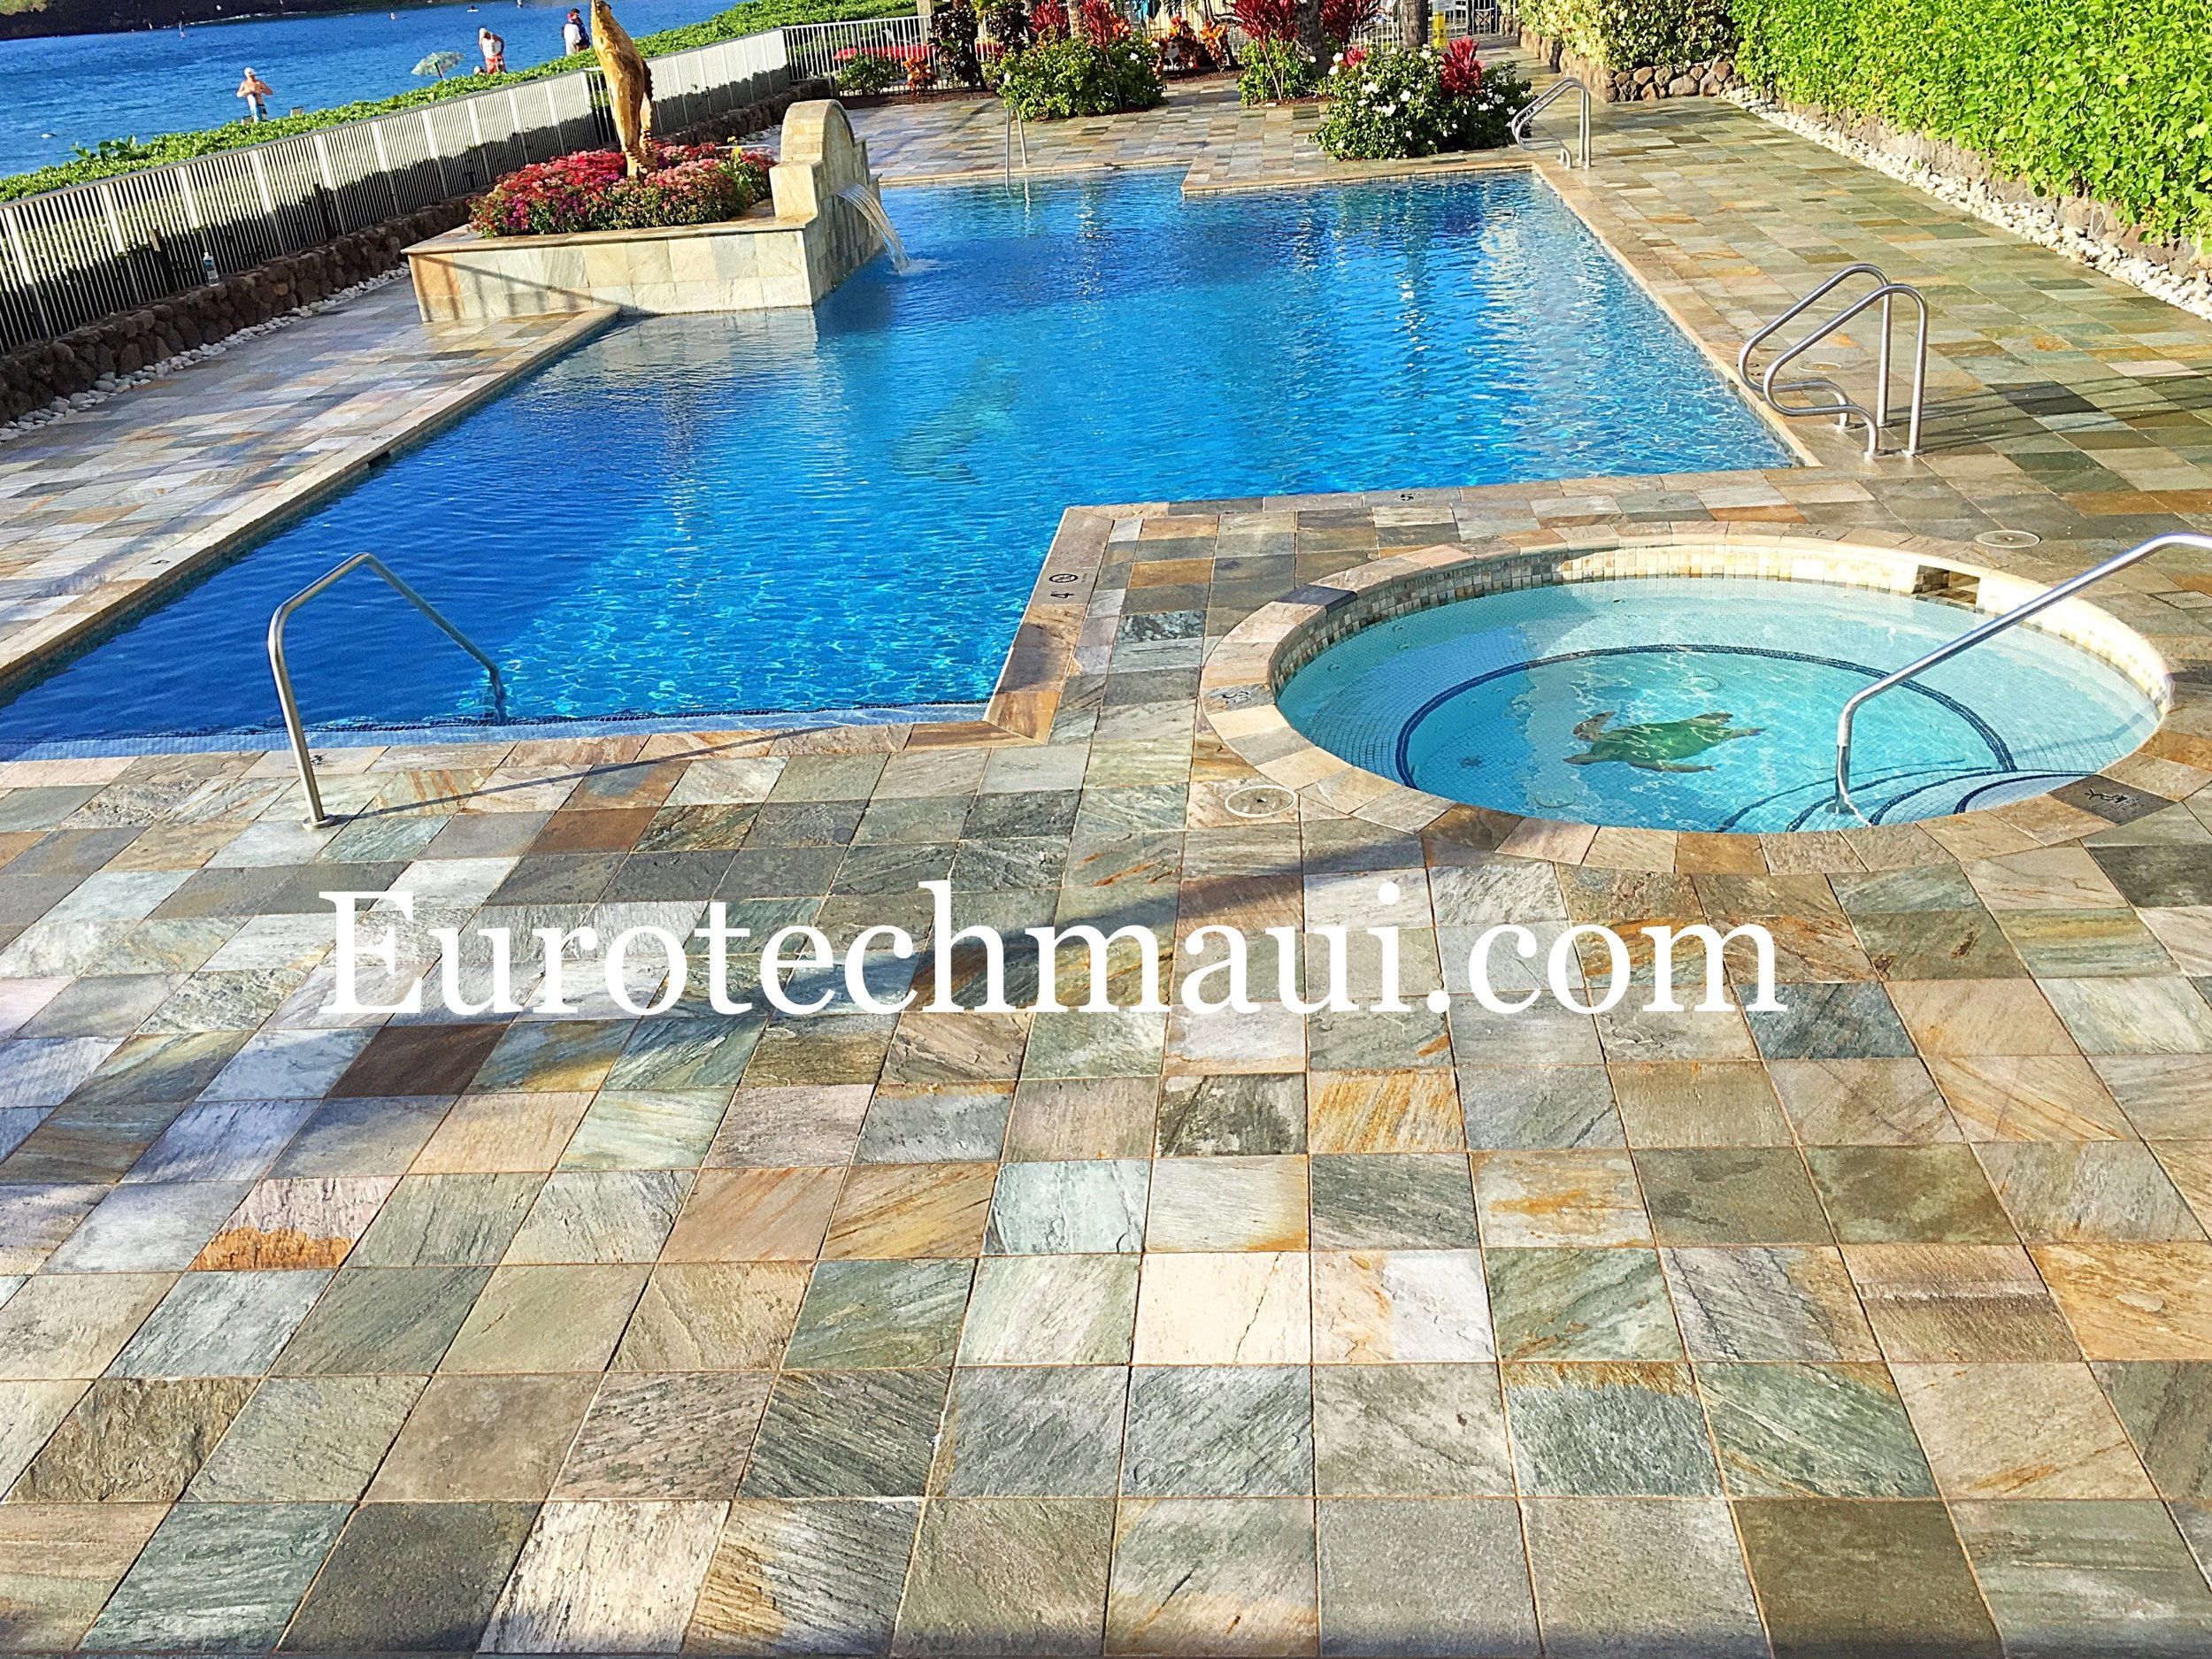 Quartzite pool deck enhancement Lahaina, Maui